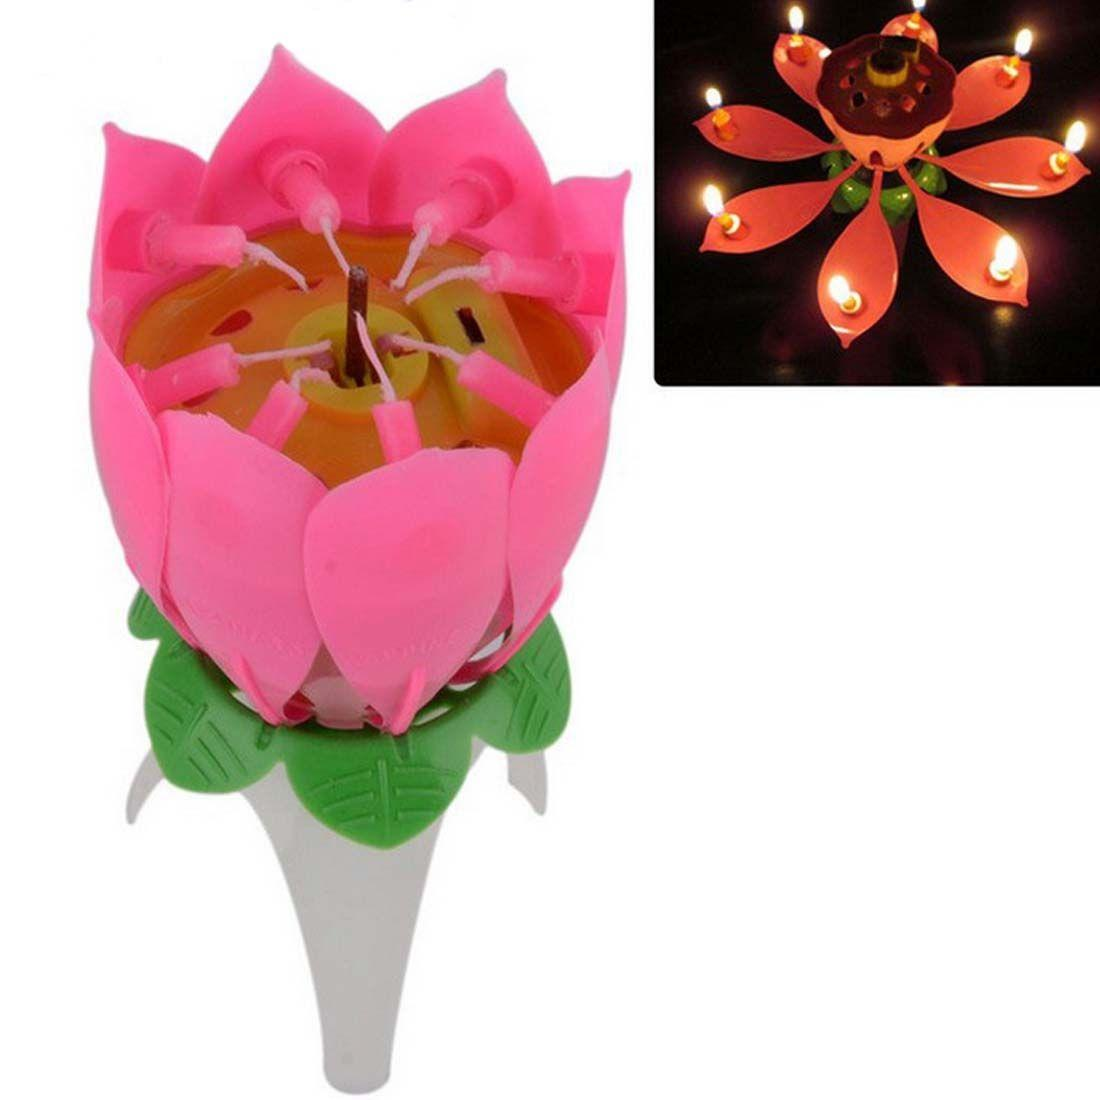 100pcs Non Smoky Safty Sparkling Flower Candle , 8 Wicks Musical Lotus Birthday Candle , Happy Birthday Music Candles Party Supplies